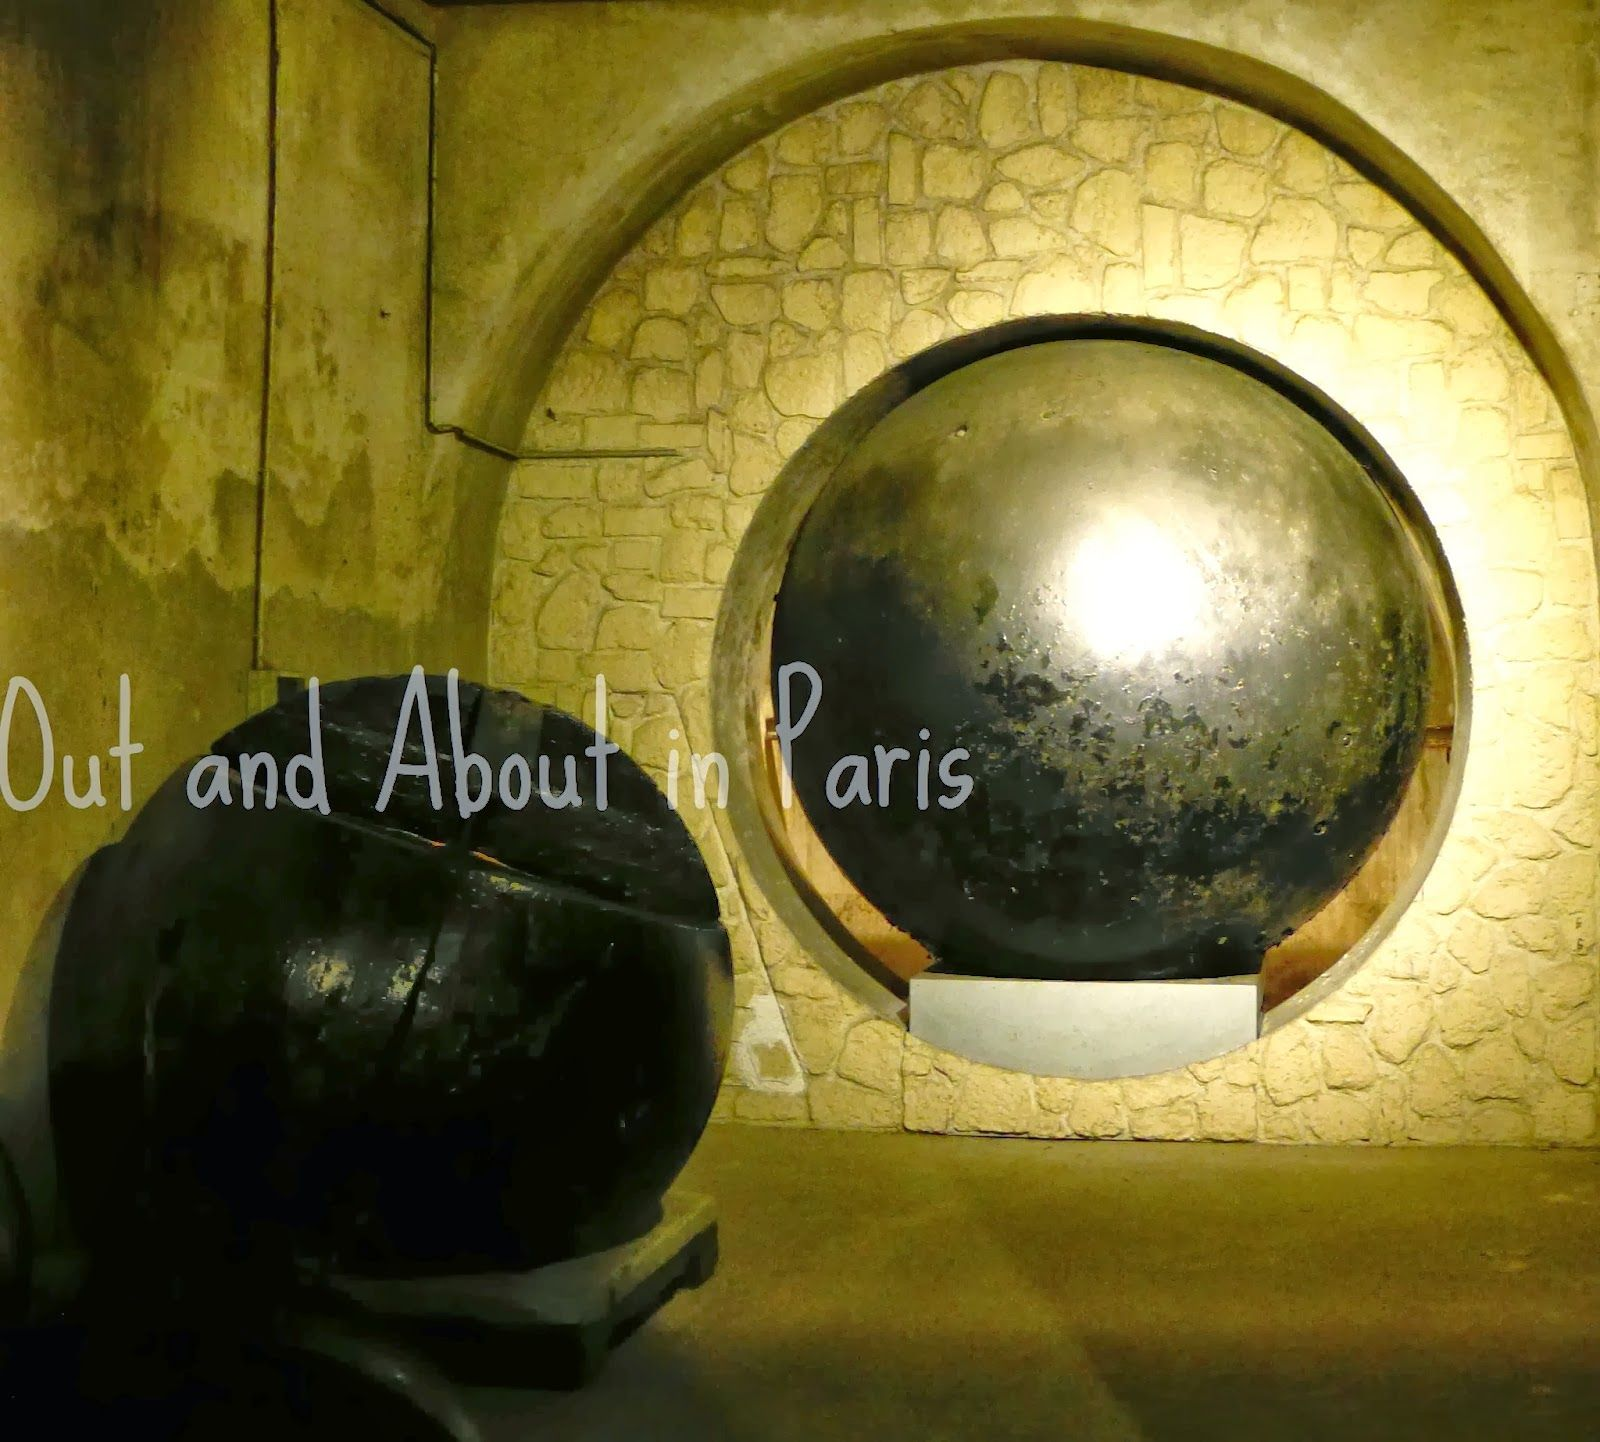 Out and About in Paris: Going Underground for the Smelliest Tour in Paris - The Paris Sewer Museum